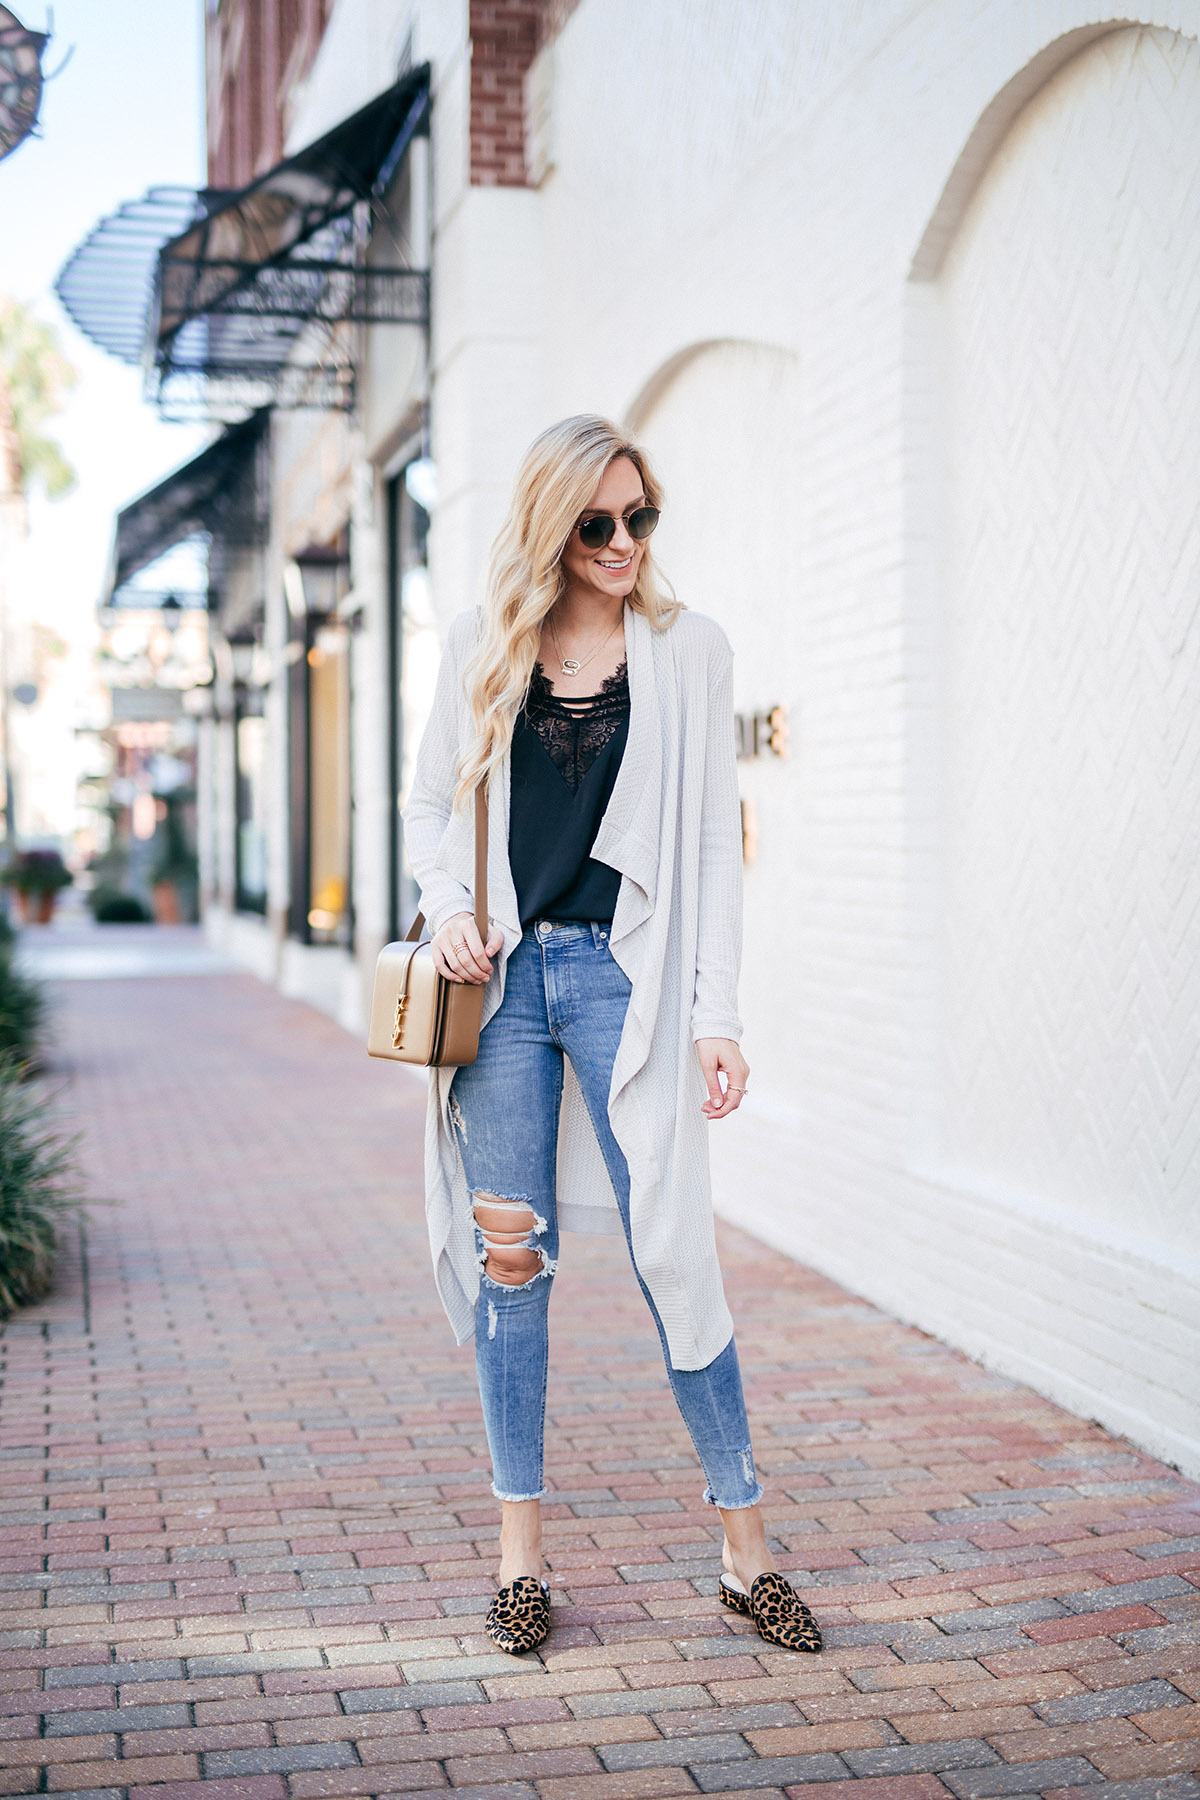 Fall Wardrobe Checklist | Long Cardigan + Camisole + Distressed Jeans + Mules | Fall Outfit Ideas